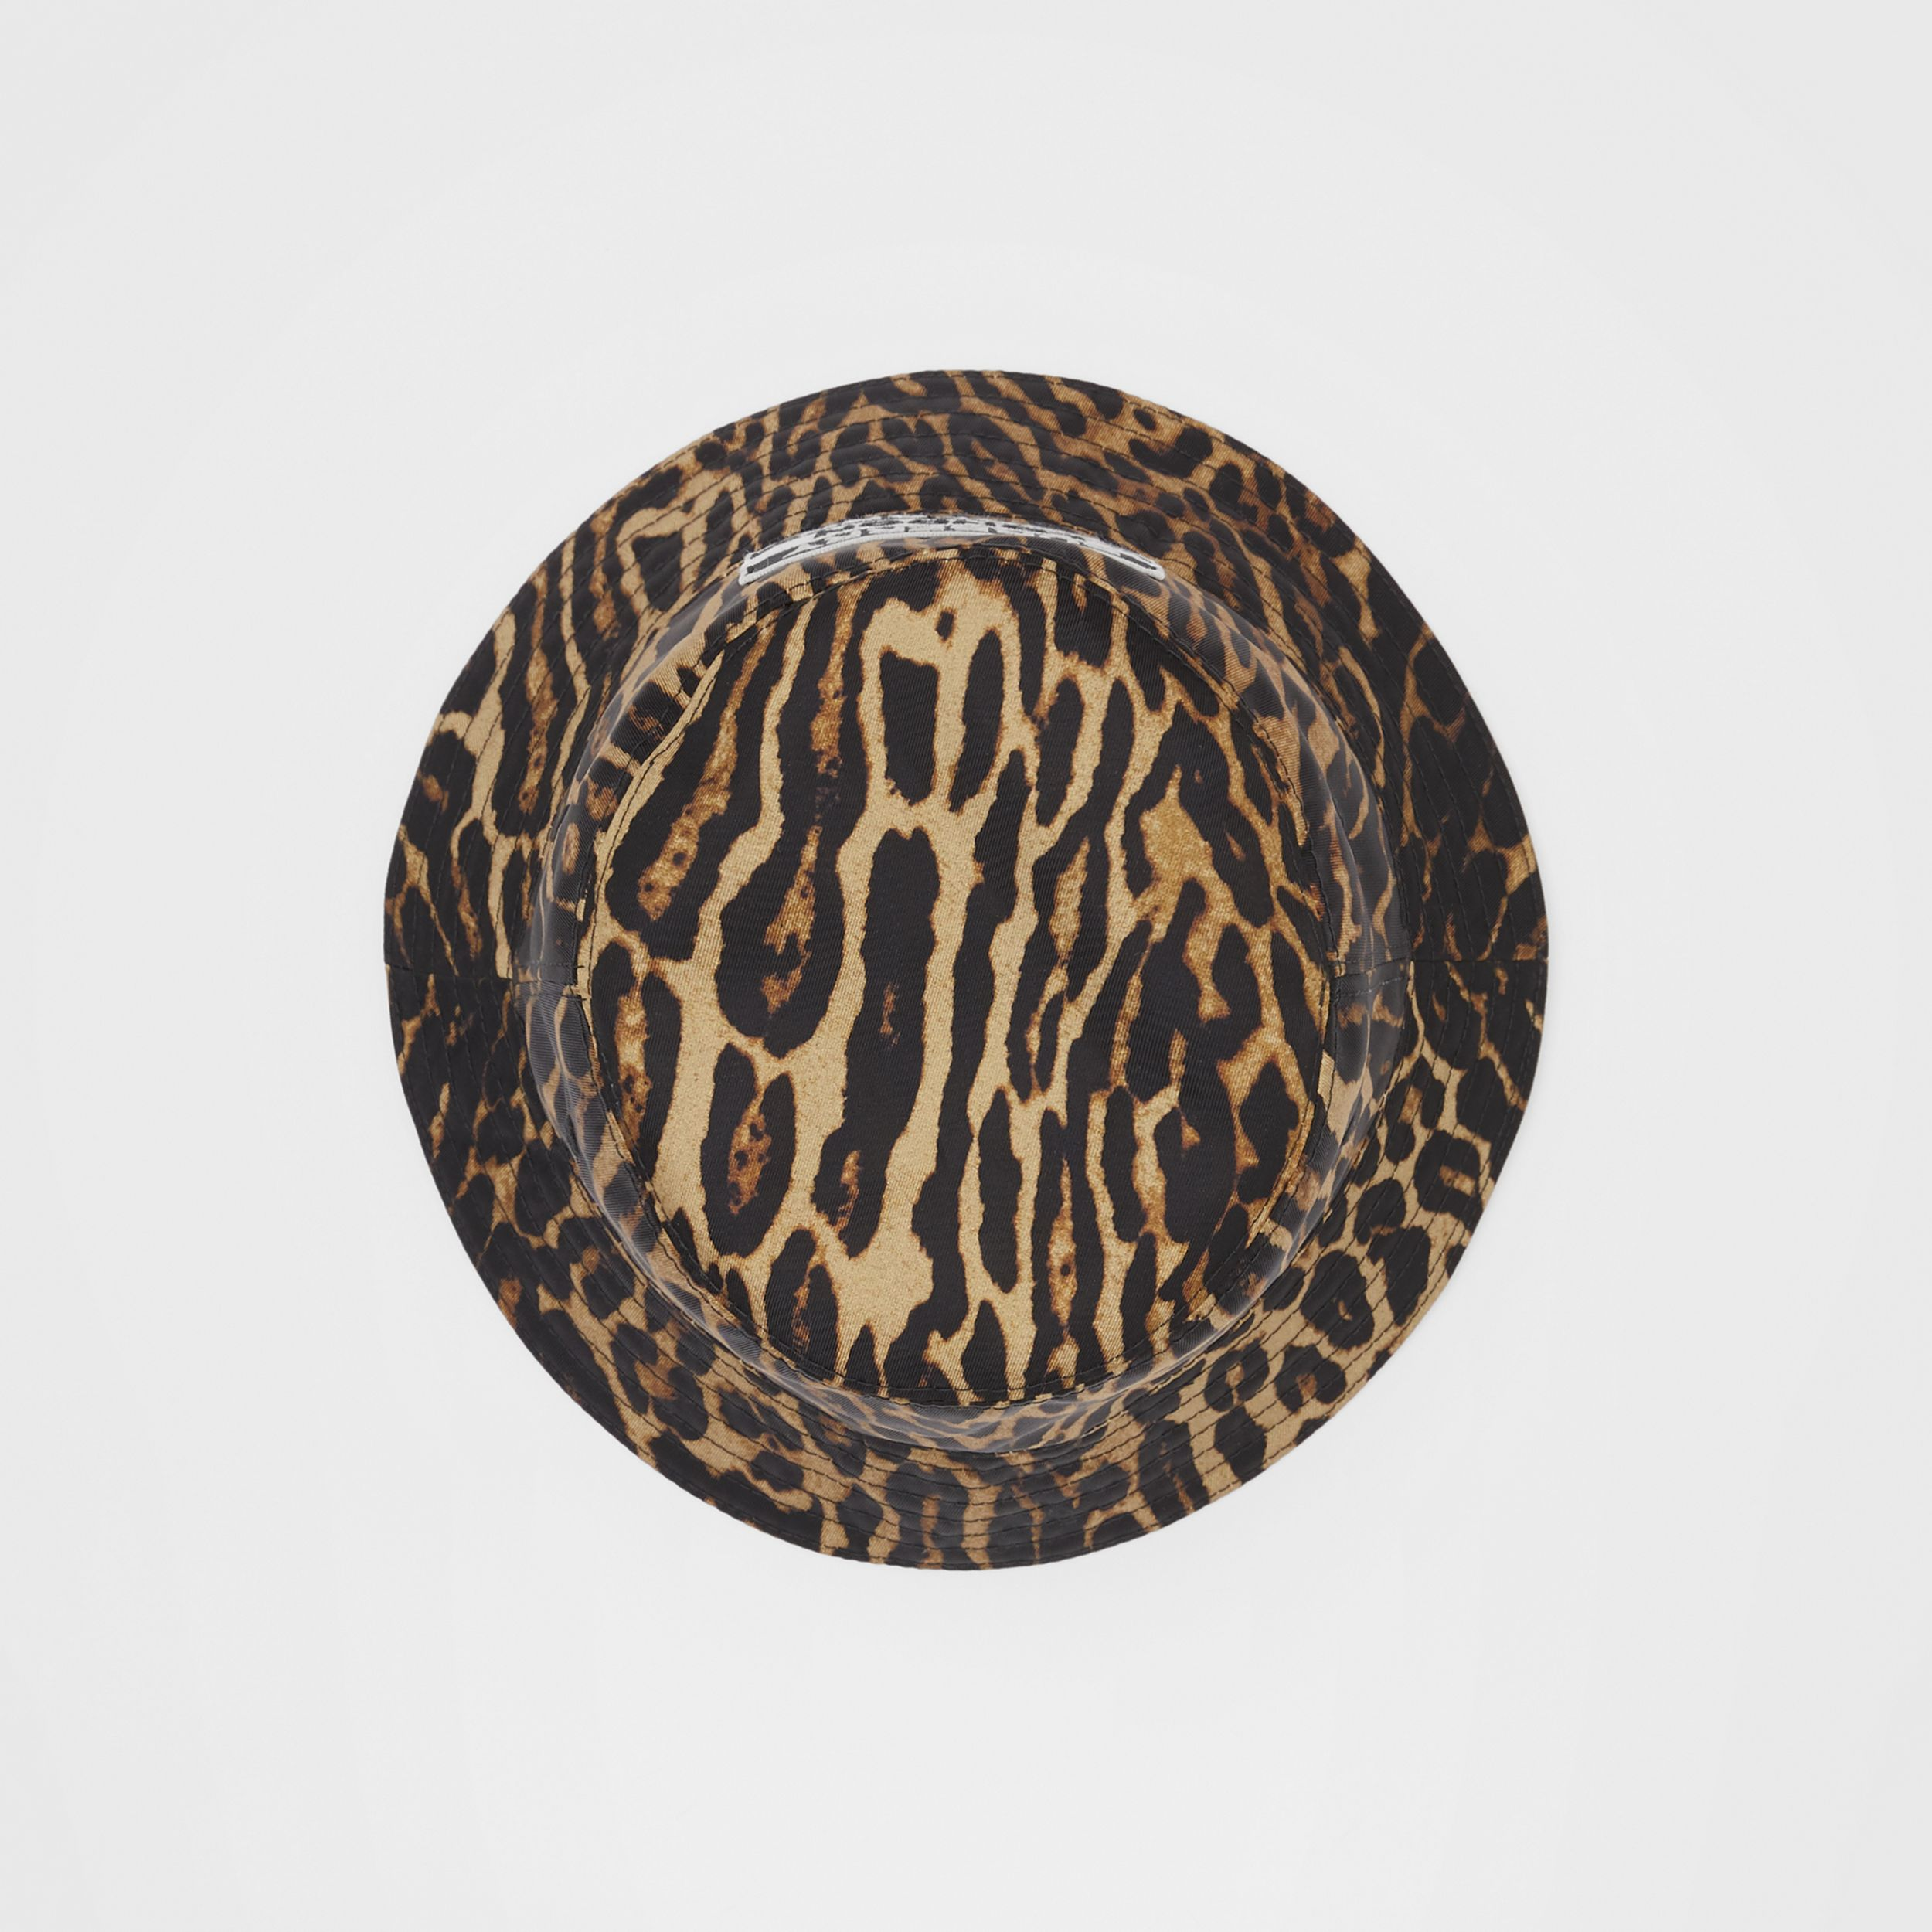 Reversible Logo Appliqué Leopard Print Bucket Hat | Burberry - 1